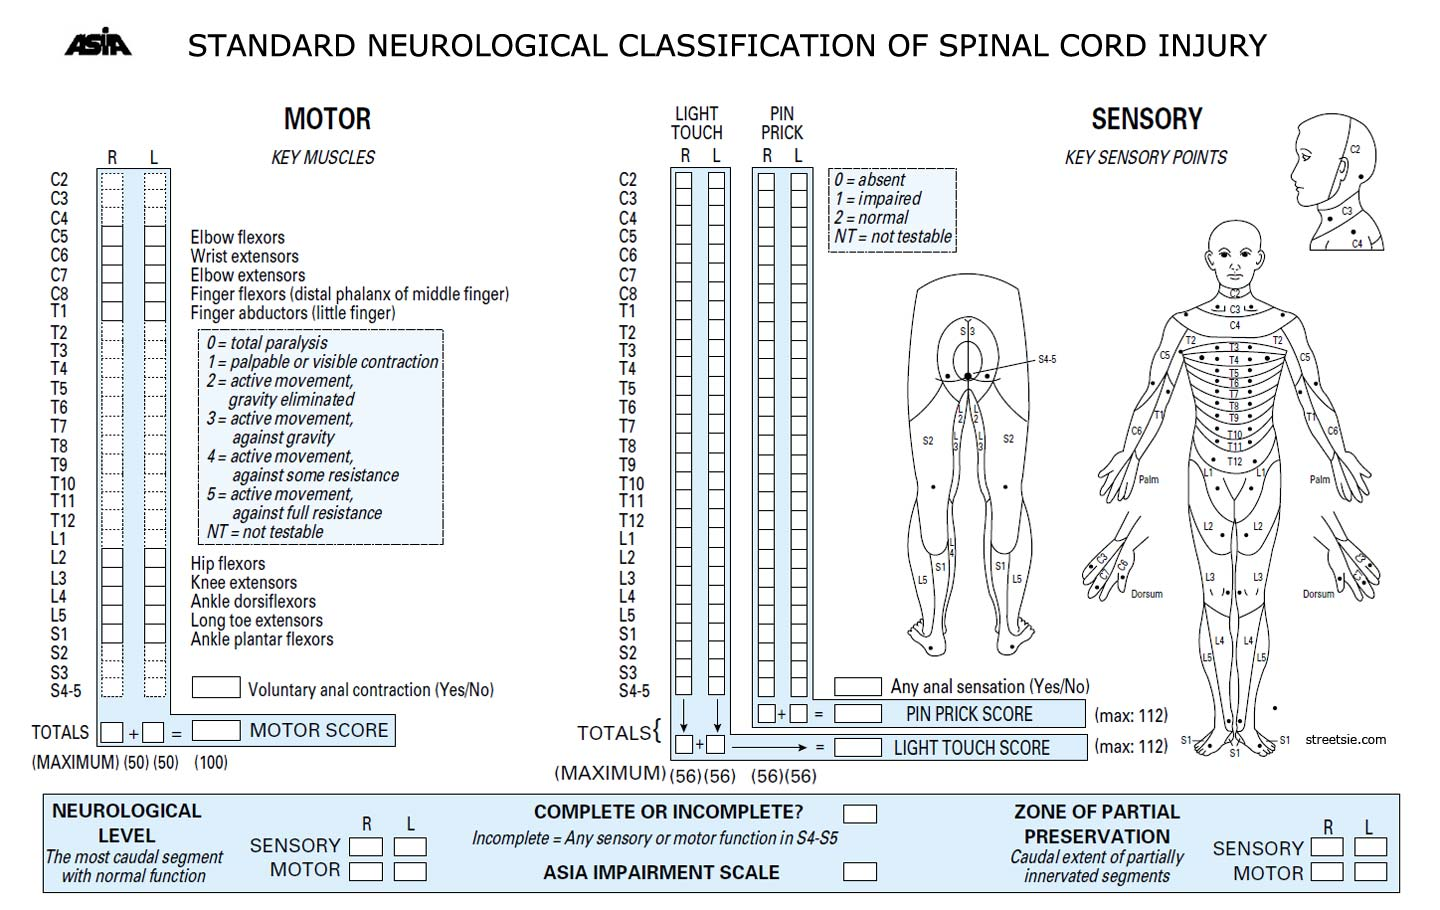 Spinal Cord Injury Classification